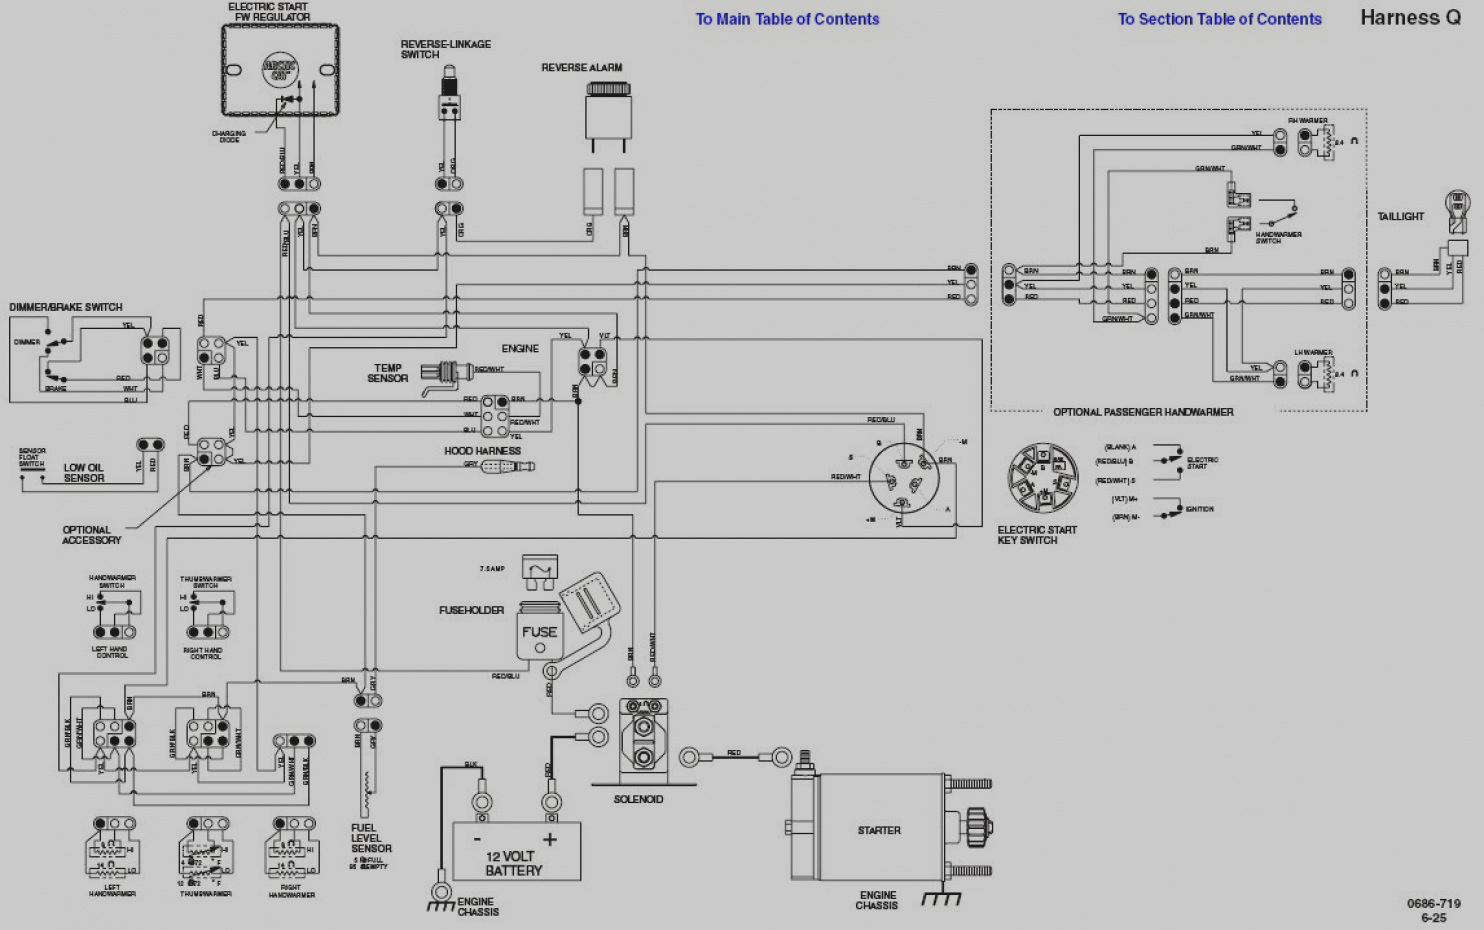 DIAGRAM] Polaris Ranger Rzr 800 Wiring Diagram FULL Version HD Quality Wiring  Diagram - 05081356ACCWIRING.CONTOROCK.ITCONTO ROCK